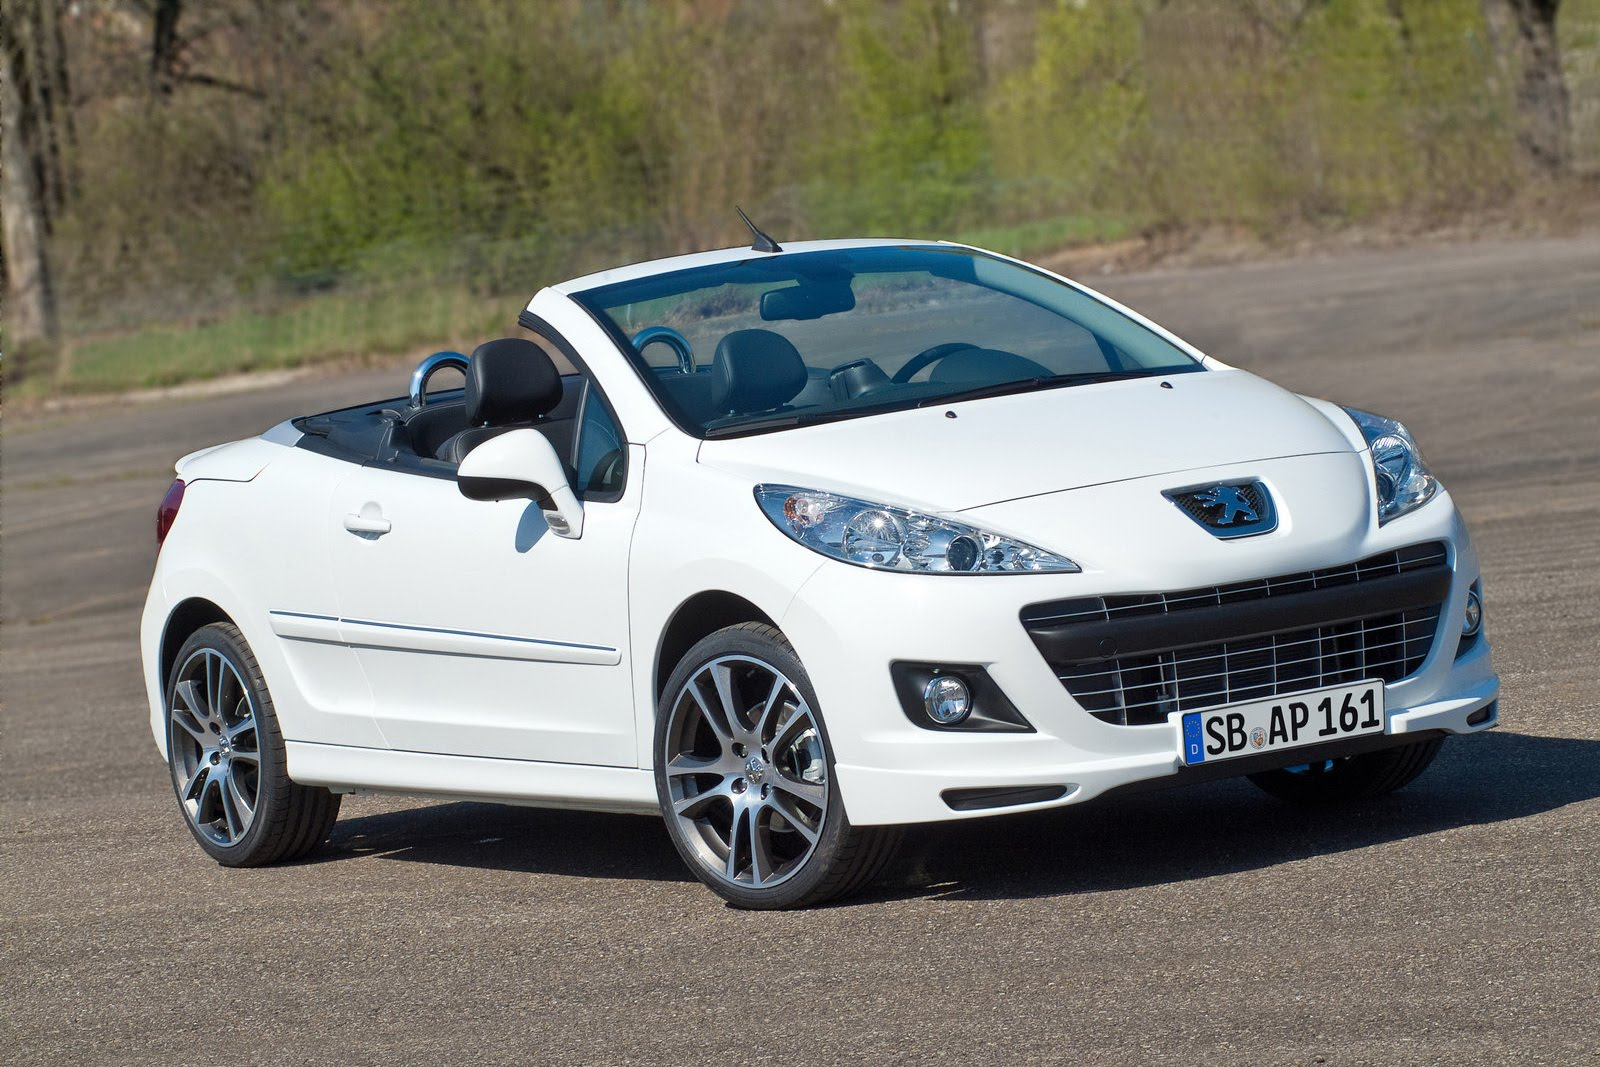 2016 peugeot 207 cc pictures information and specs. Black Bedroom Furniture Sets. Home Design Ideas